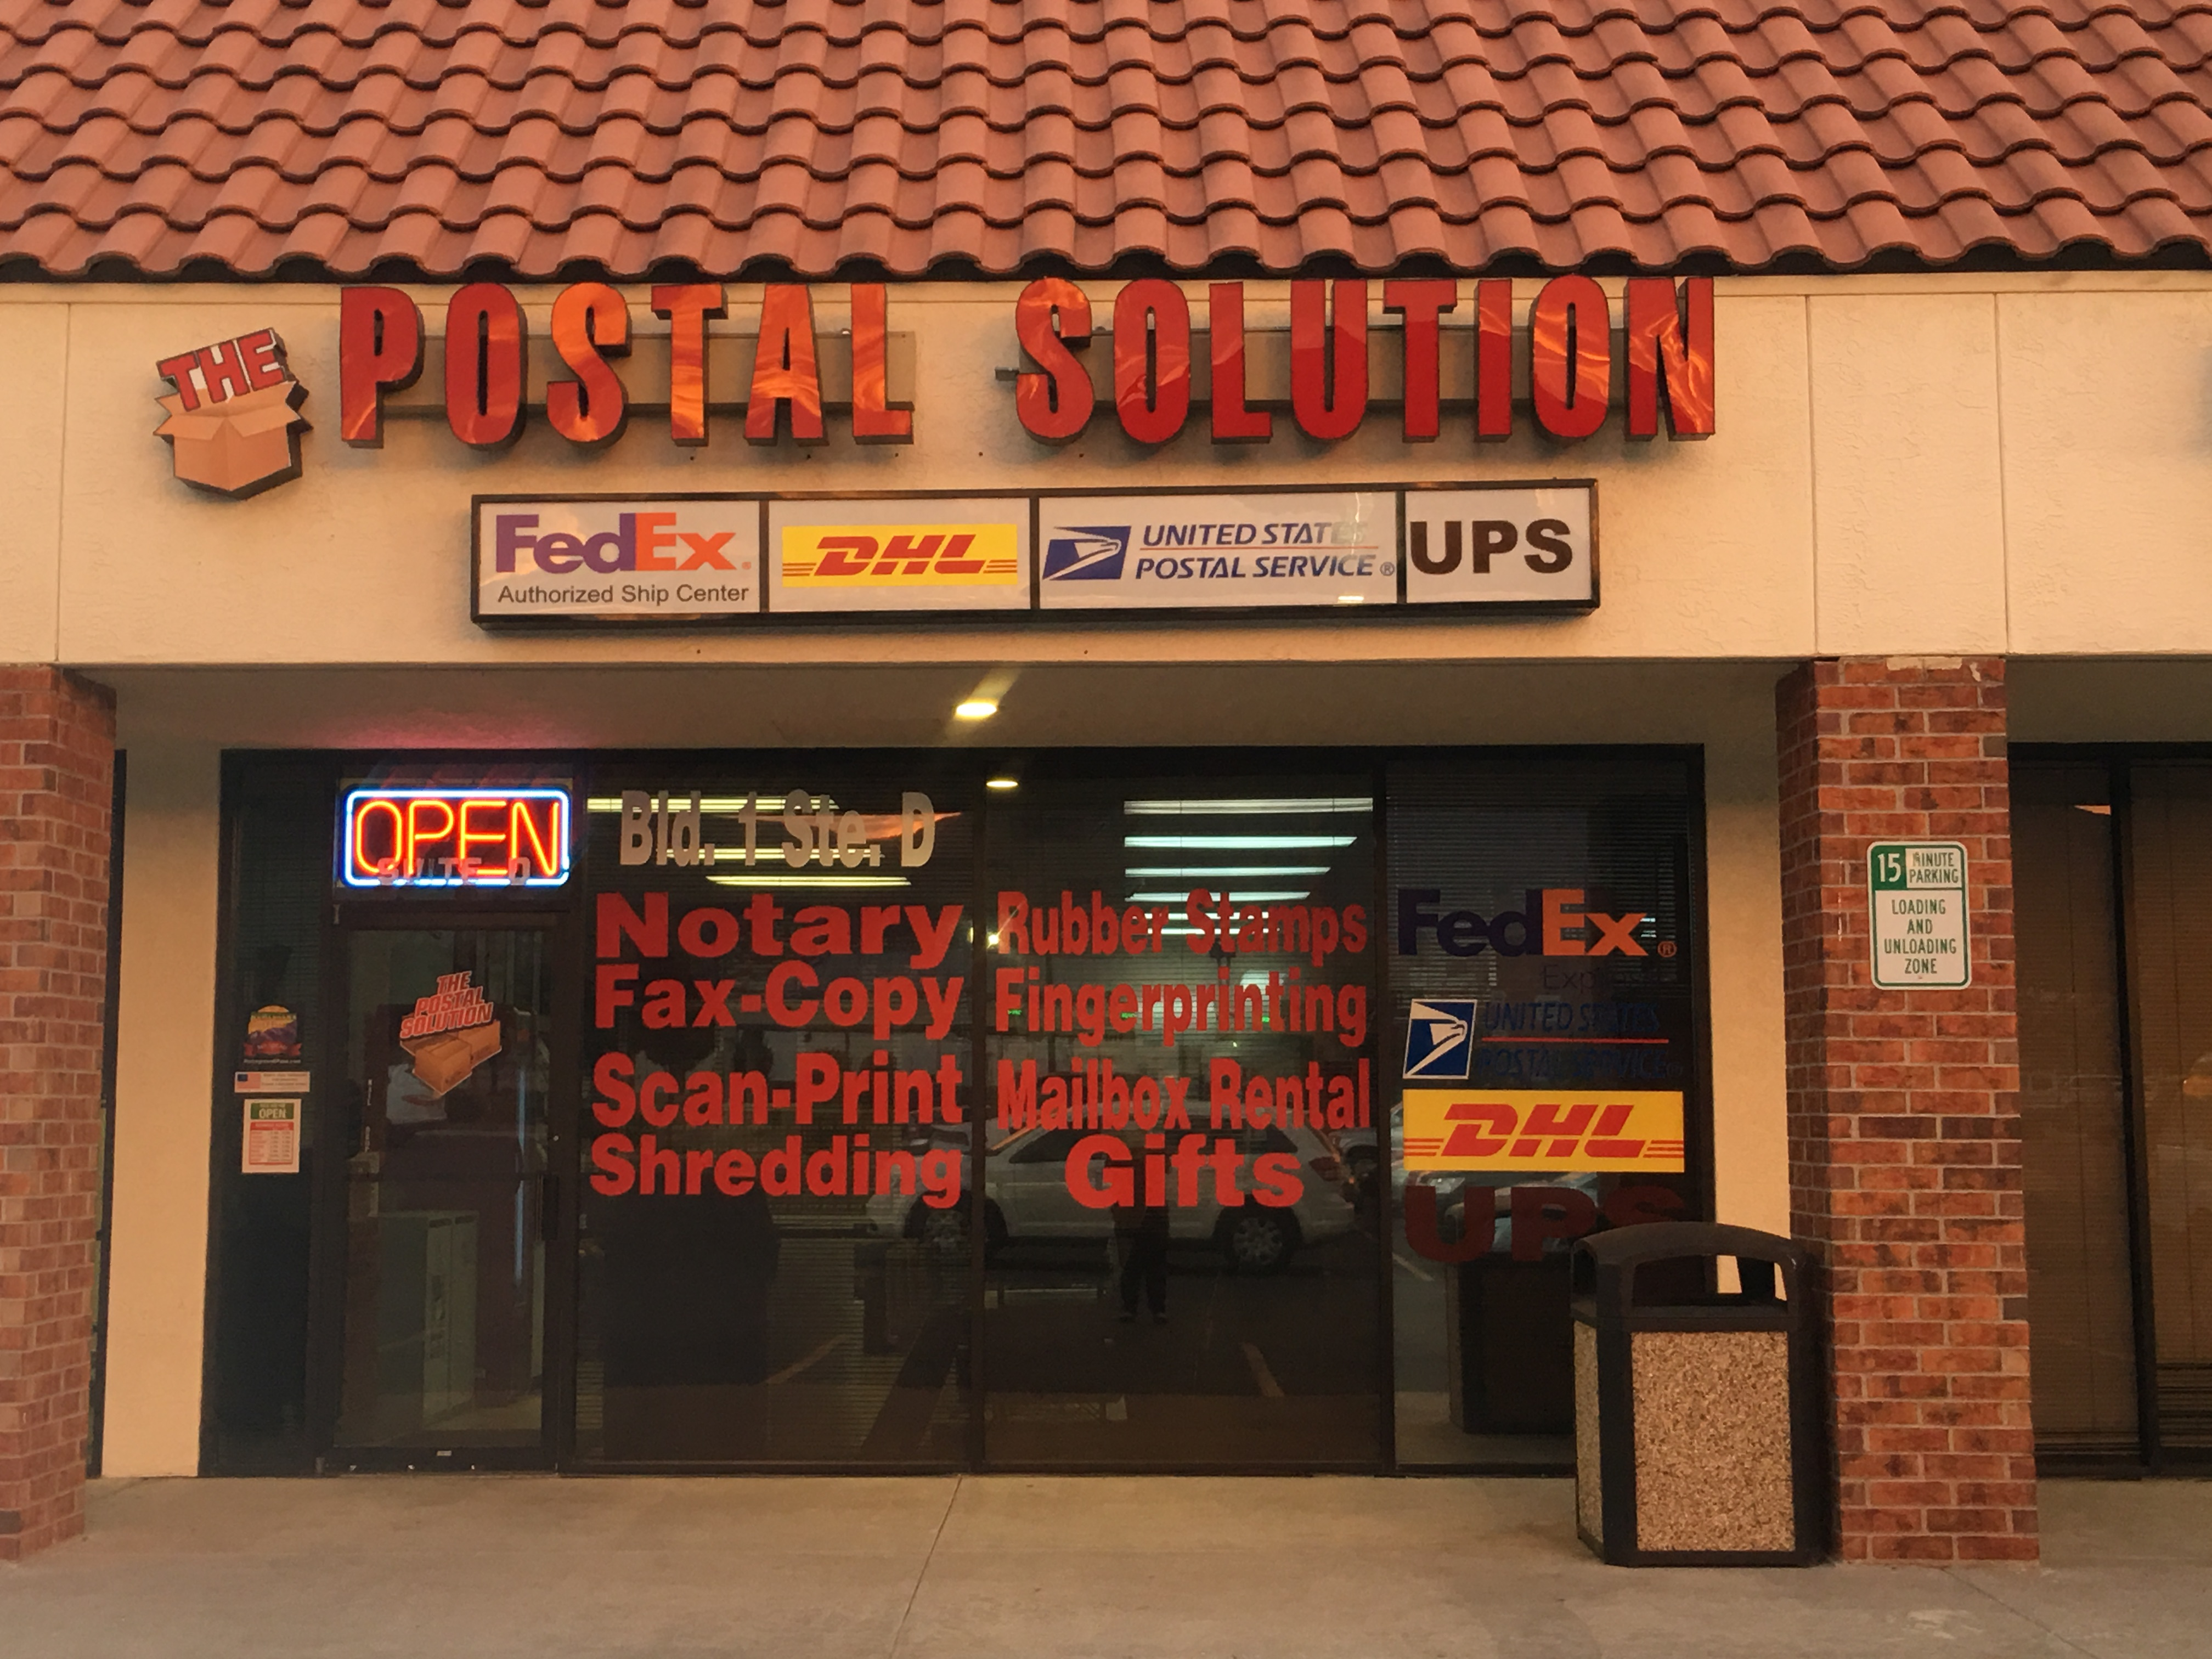 Color printing el paso tx - The Postal Solution Is A Local And Independently Owned And Operated Packing Shipping Printing And Business Services Center Located In El Paso Tx